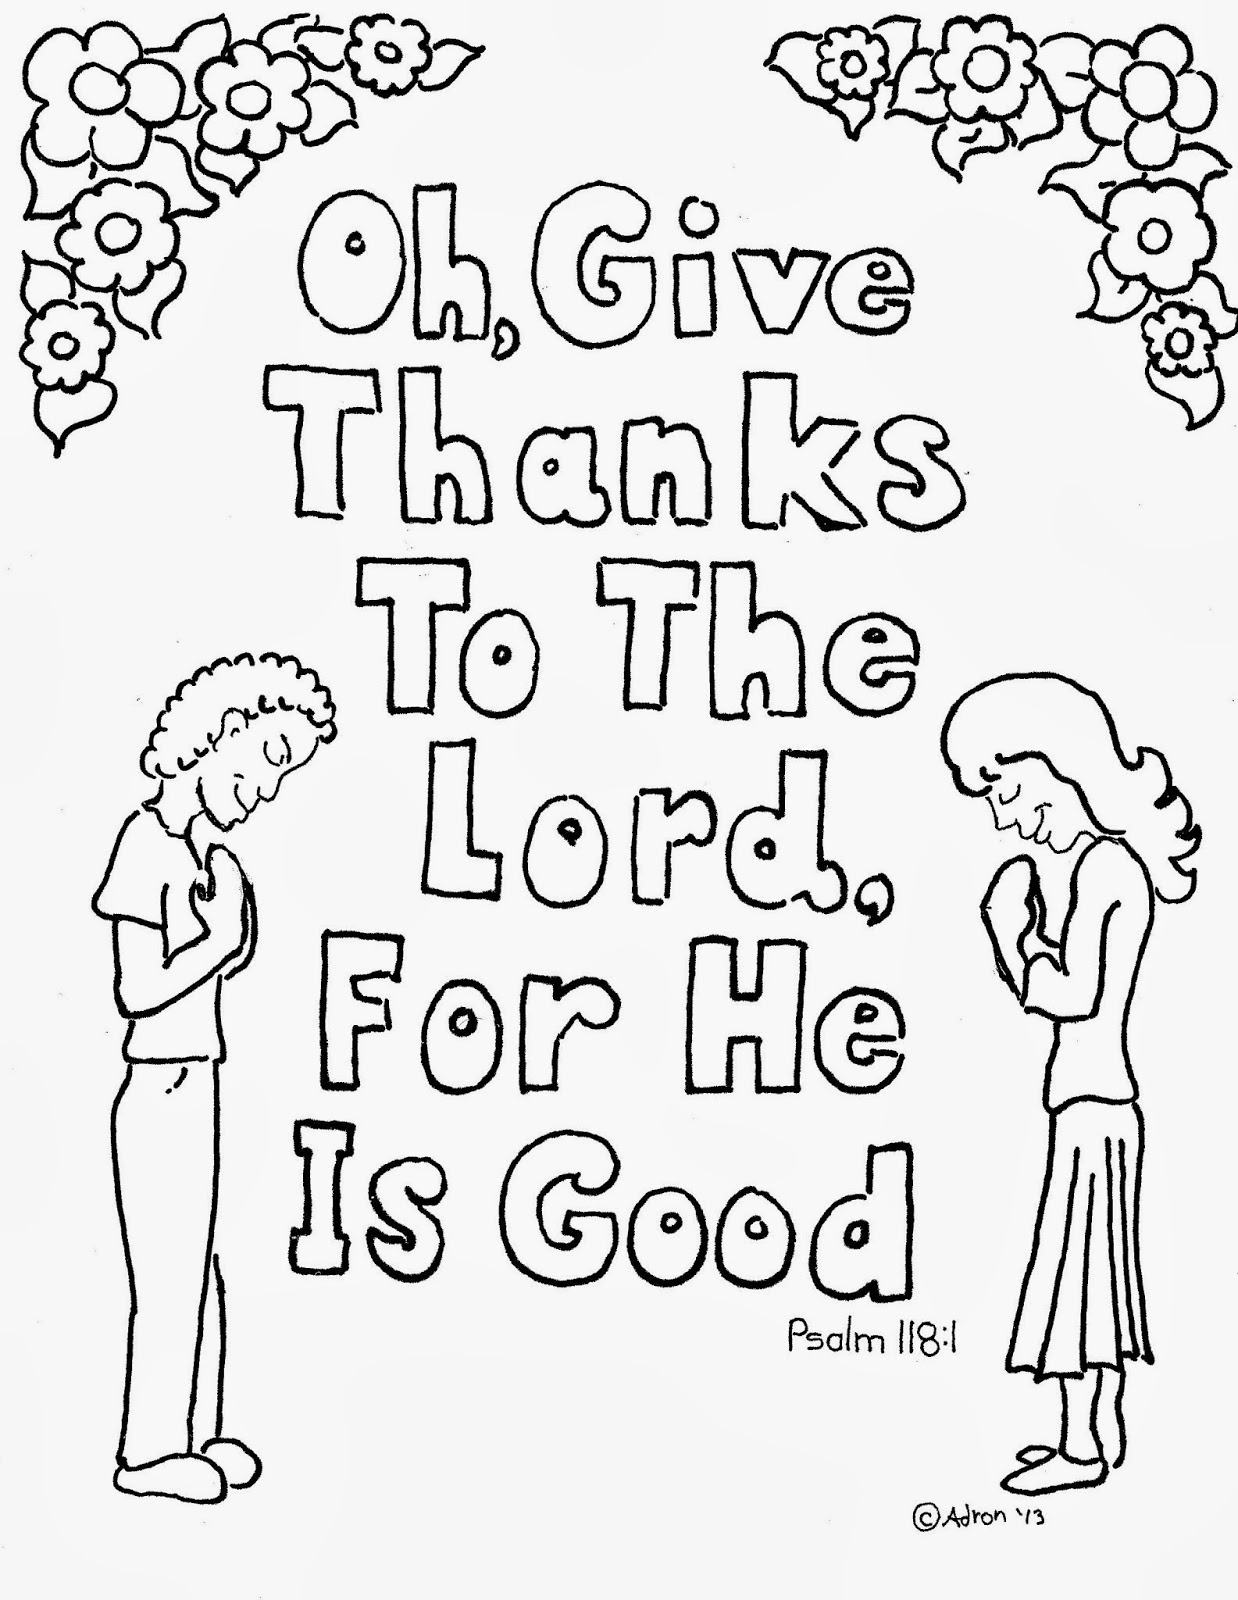 Coloring Pages For Kids By Mr Adron Psalm 118 1 Coloring